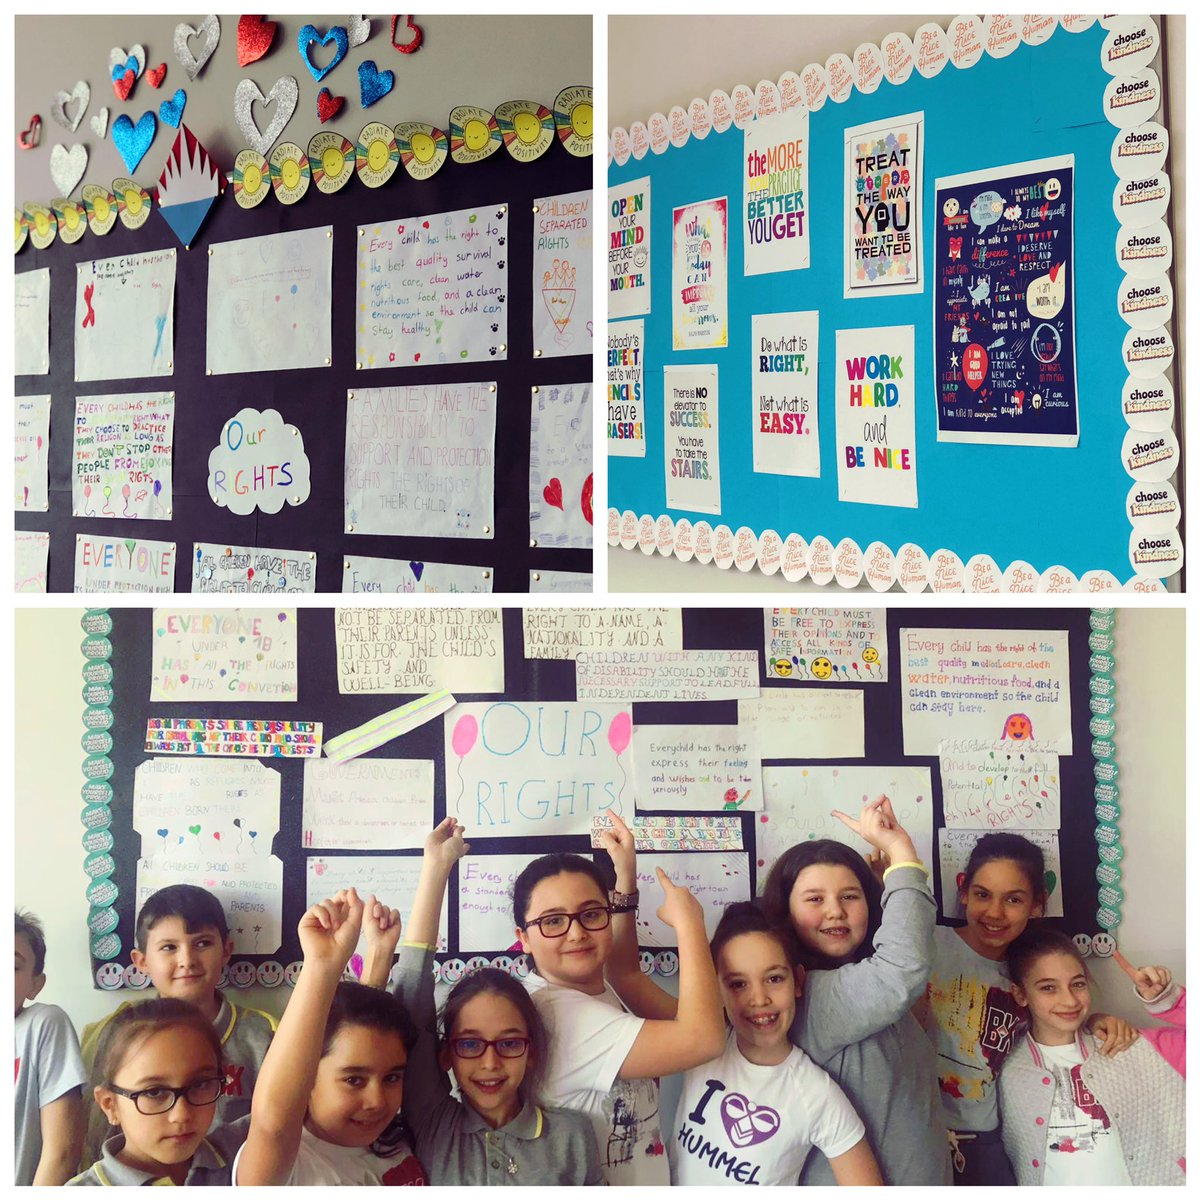 Our 5th graders prepared posters and motivational quotes about Childrens' Rights! 💫✨  @UNICEF #childrensrights  @BK_Luleburgaz @altan_azaplar @DuyguPeran @eypaksar